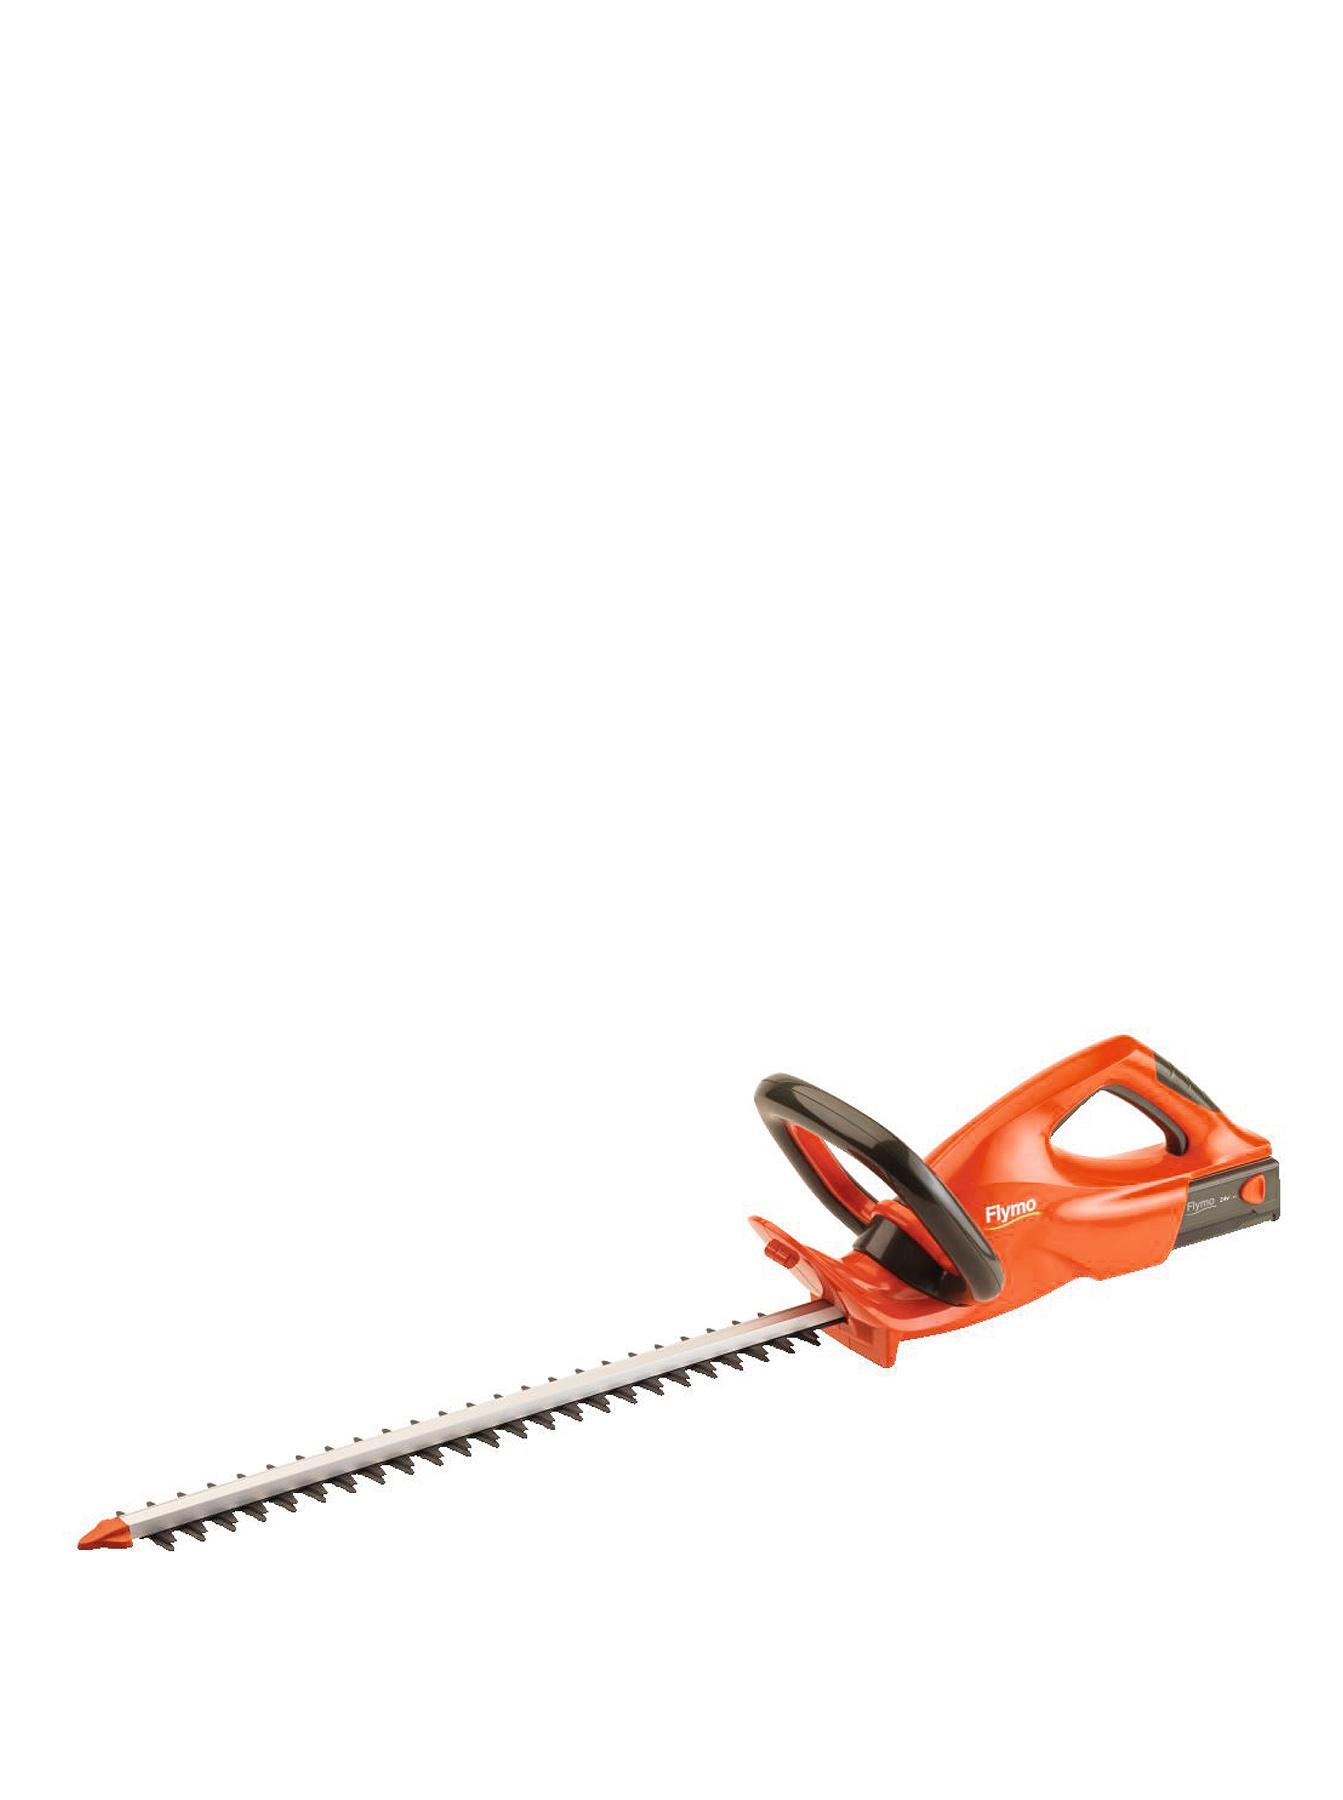 Easicut Cordless 500 24-volt Hedge Trimmer